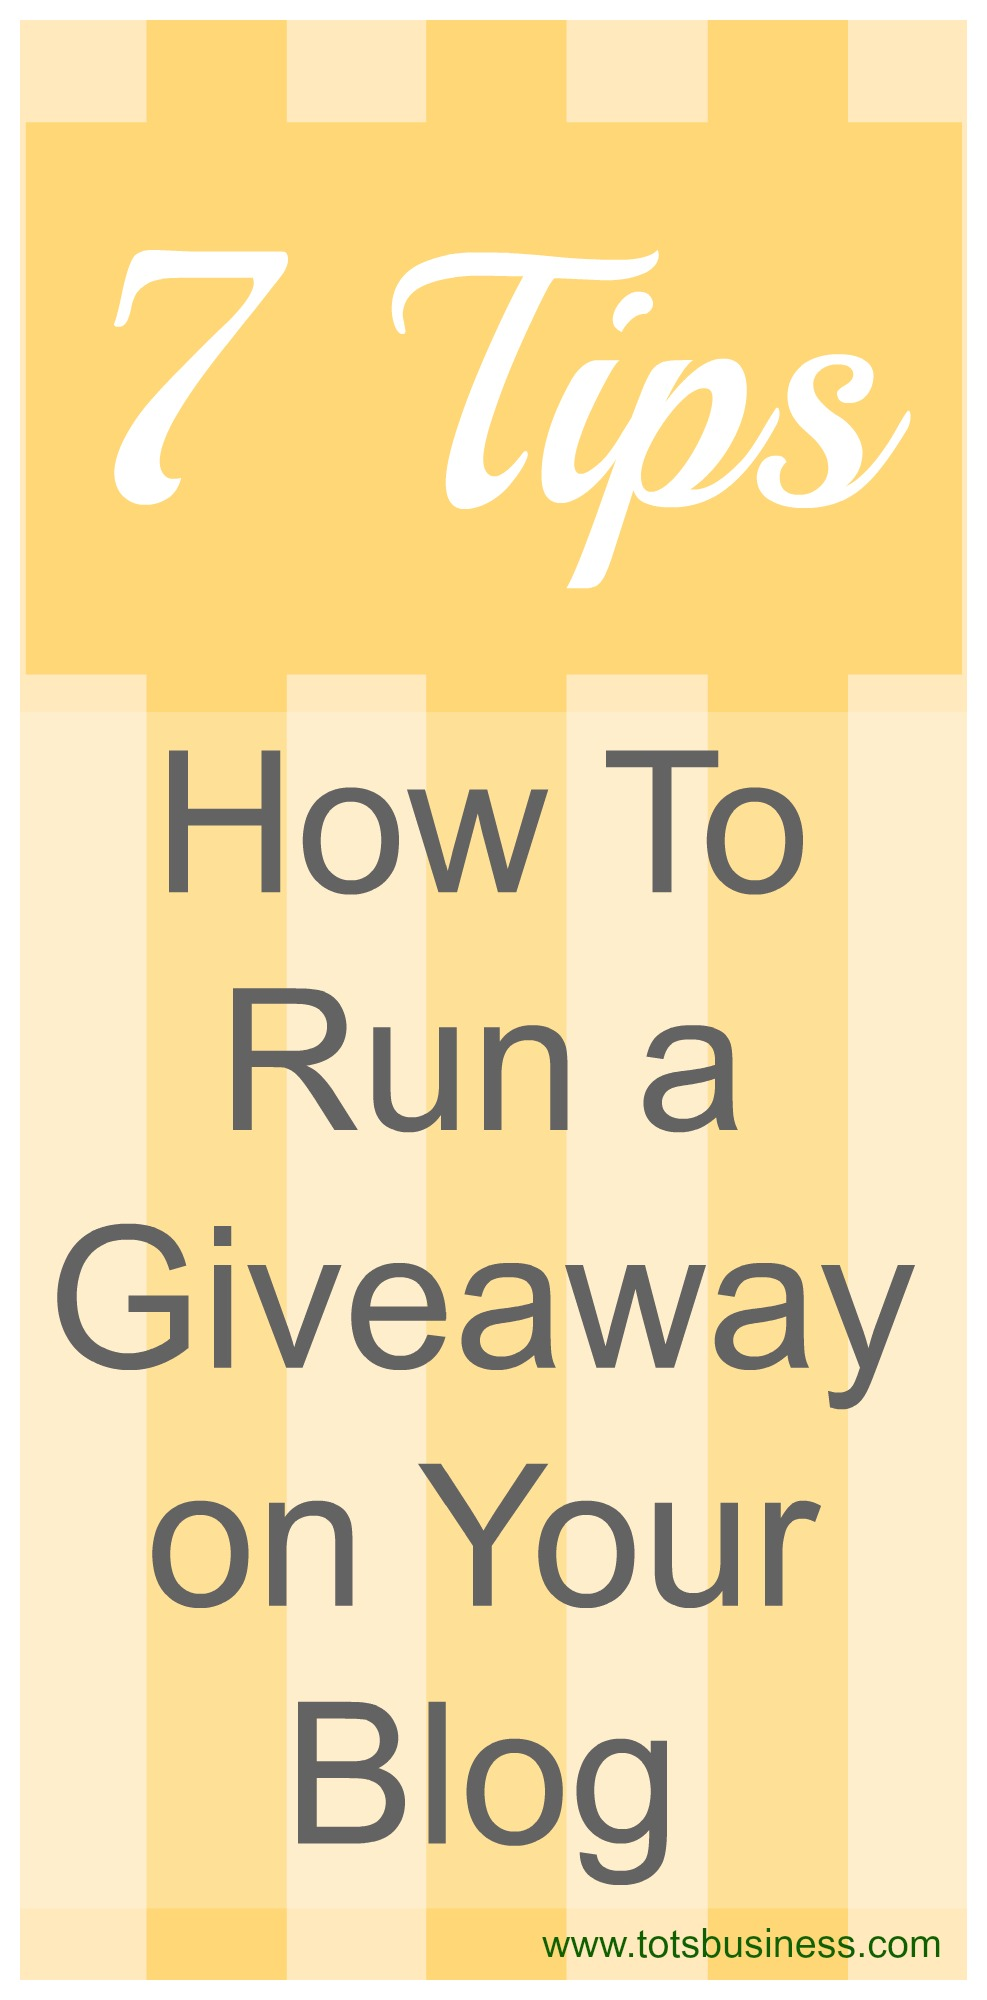 7-Tips-On-How-To-Run-a-Giveaway-on-Your-Blog